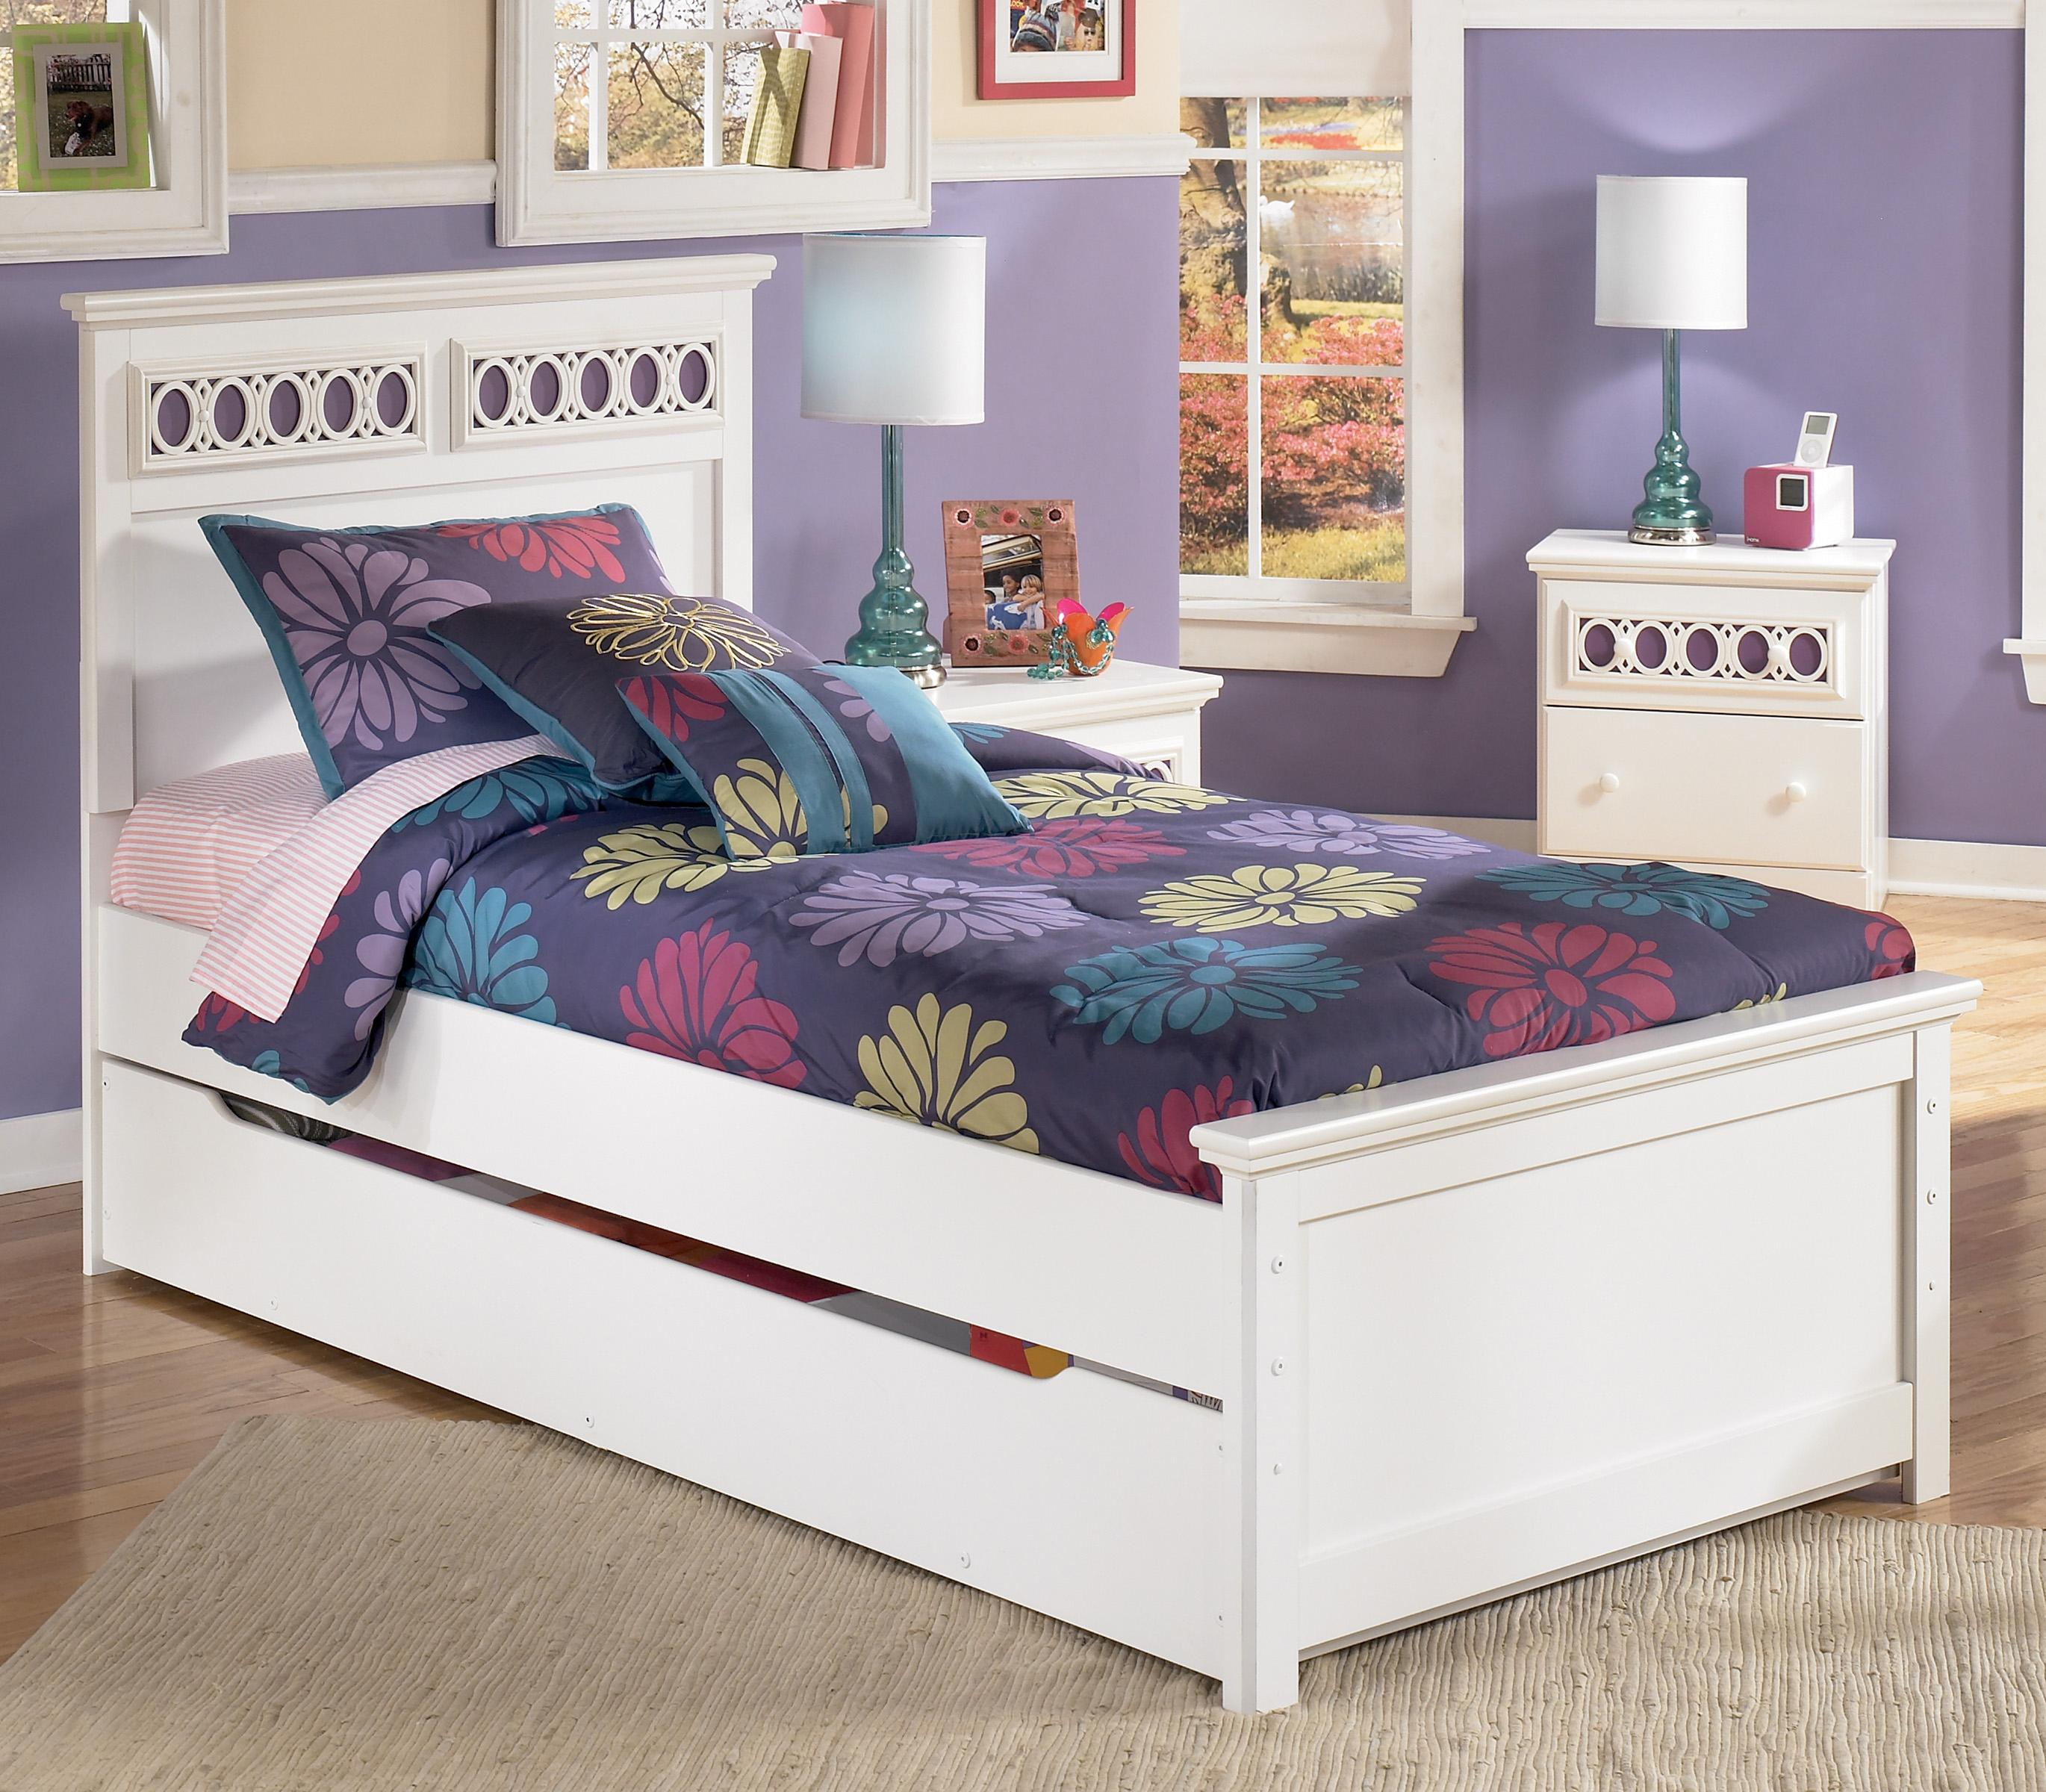 Signature Design by Ashley Zayley Twin Platform Bed with Trundle Storage Box - Item Number: B131-53+52+83+60+B100-11